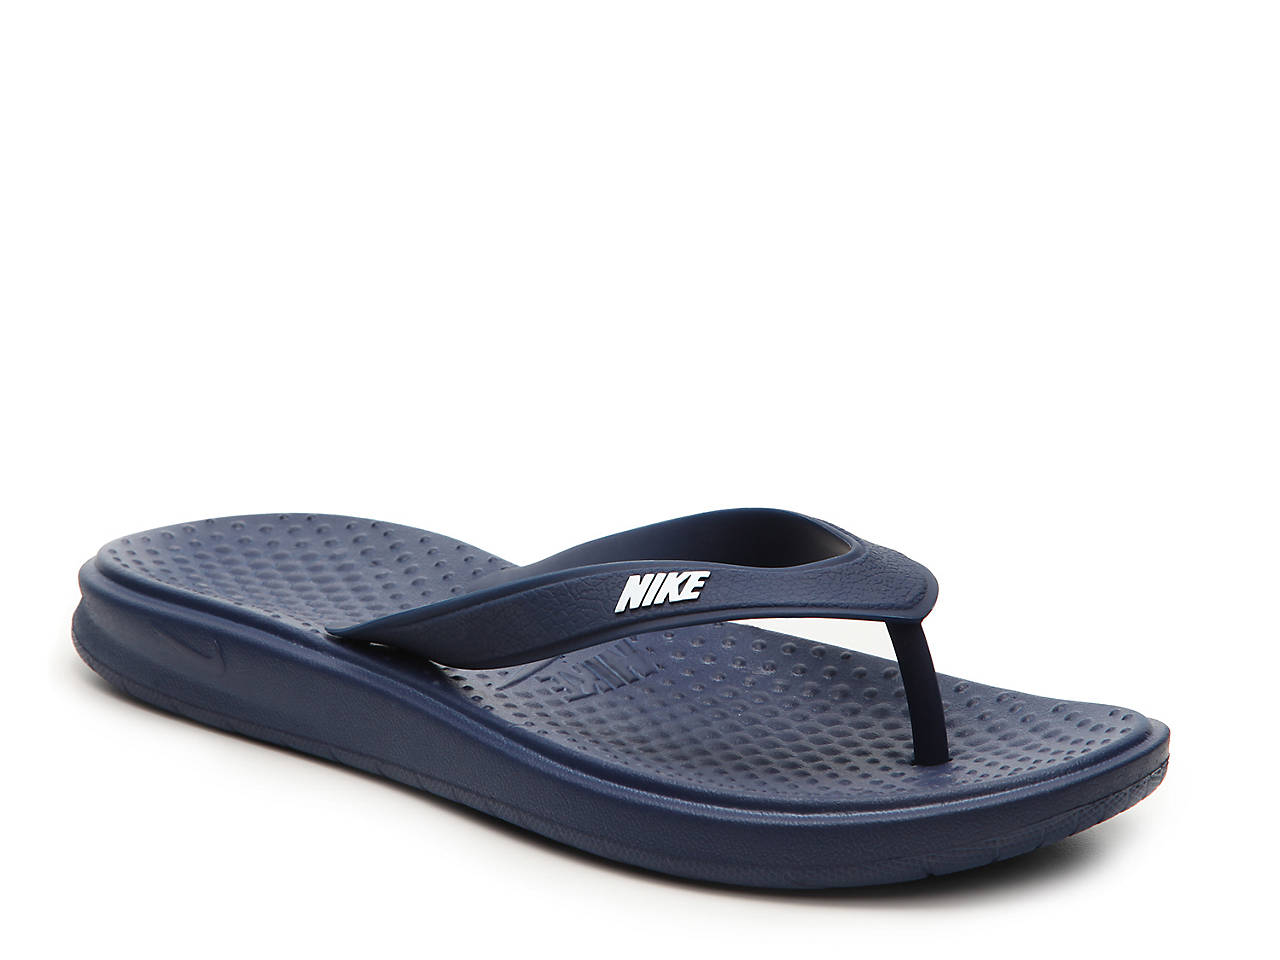 shoes comforter nike on thong footbed is comfort australia thongs womens image loading sandals itm slip ebay ladies